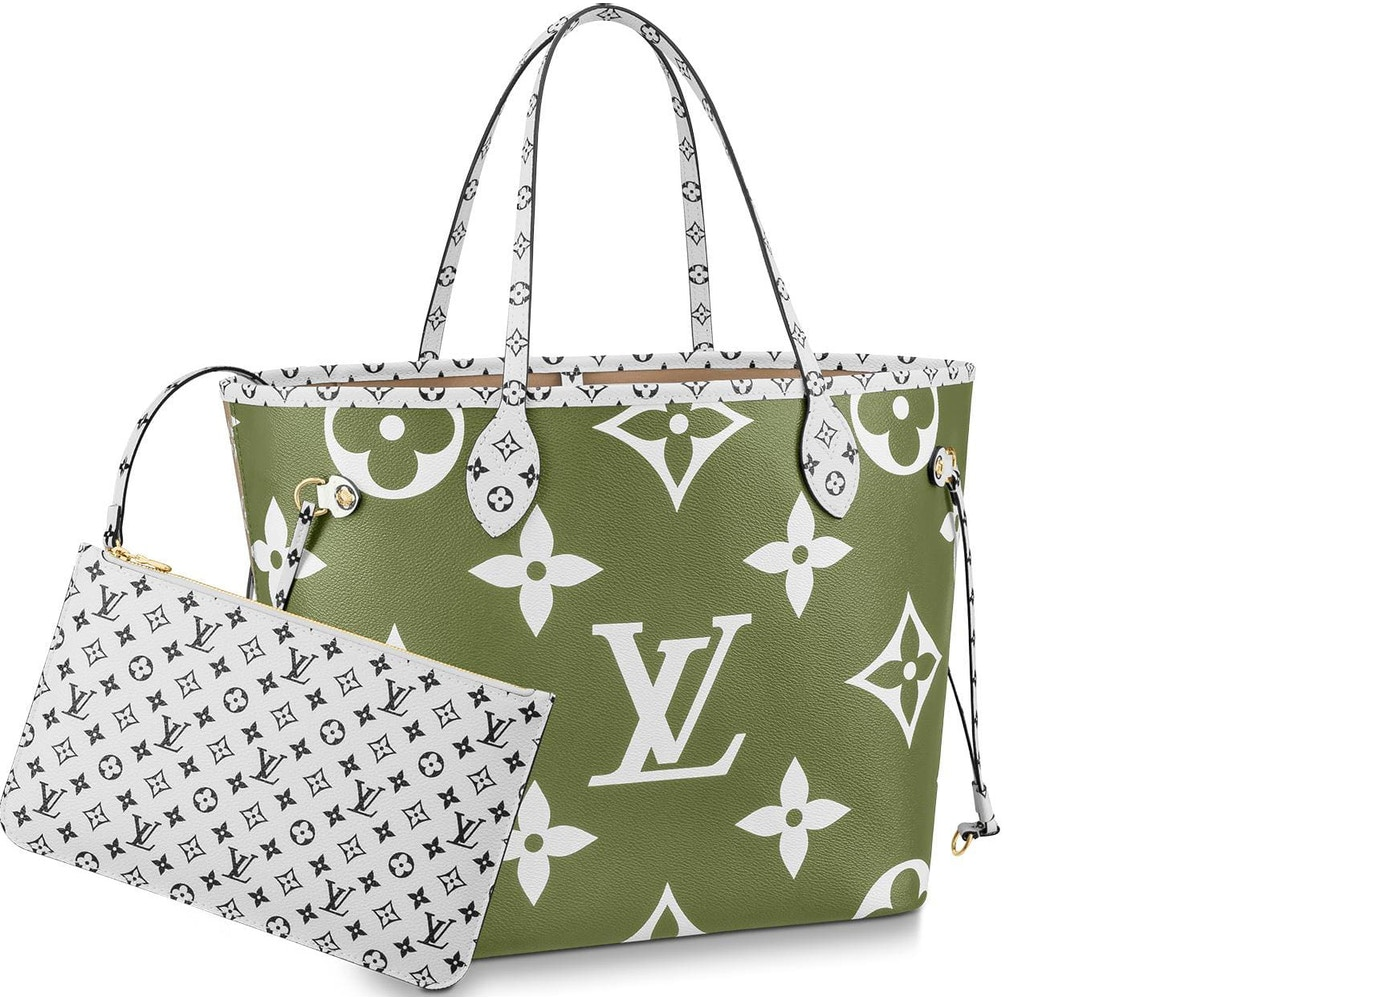 2aaaf45eb7 Louis Vuitton Neverfull Monogram Giant MM Khaki Green/Beige. Monogram Giant  MM Khaki Green/Beige